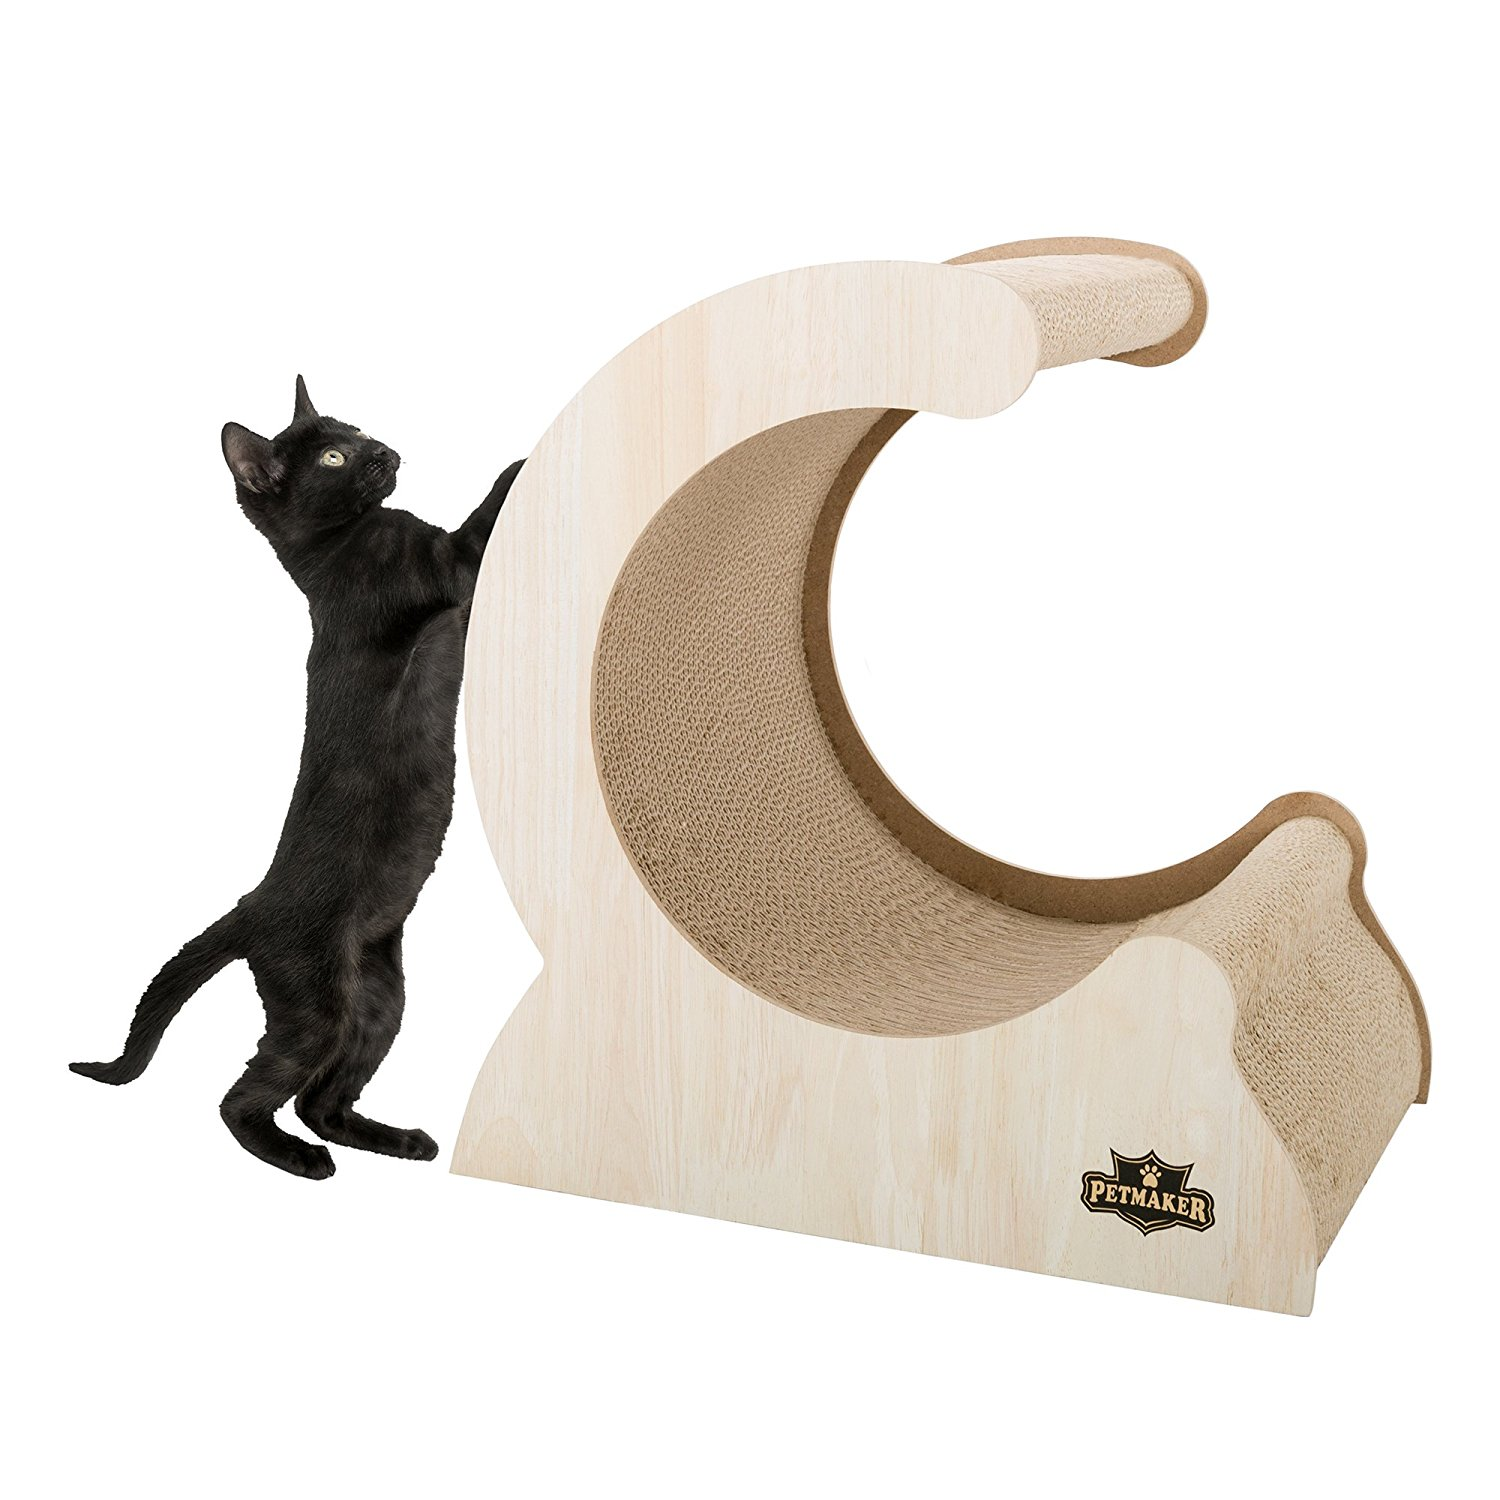 Cat Scratching Post- Wood and Cardboard Incline Vertical Scratcher Station for Kittens and Large Cats,... by